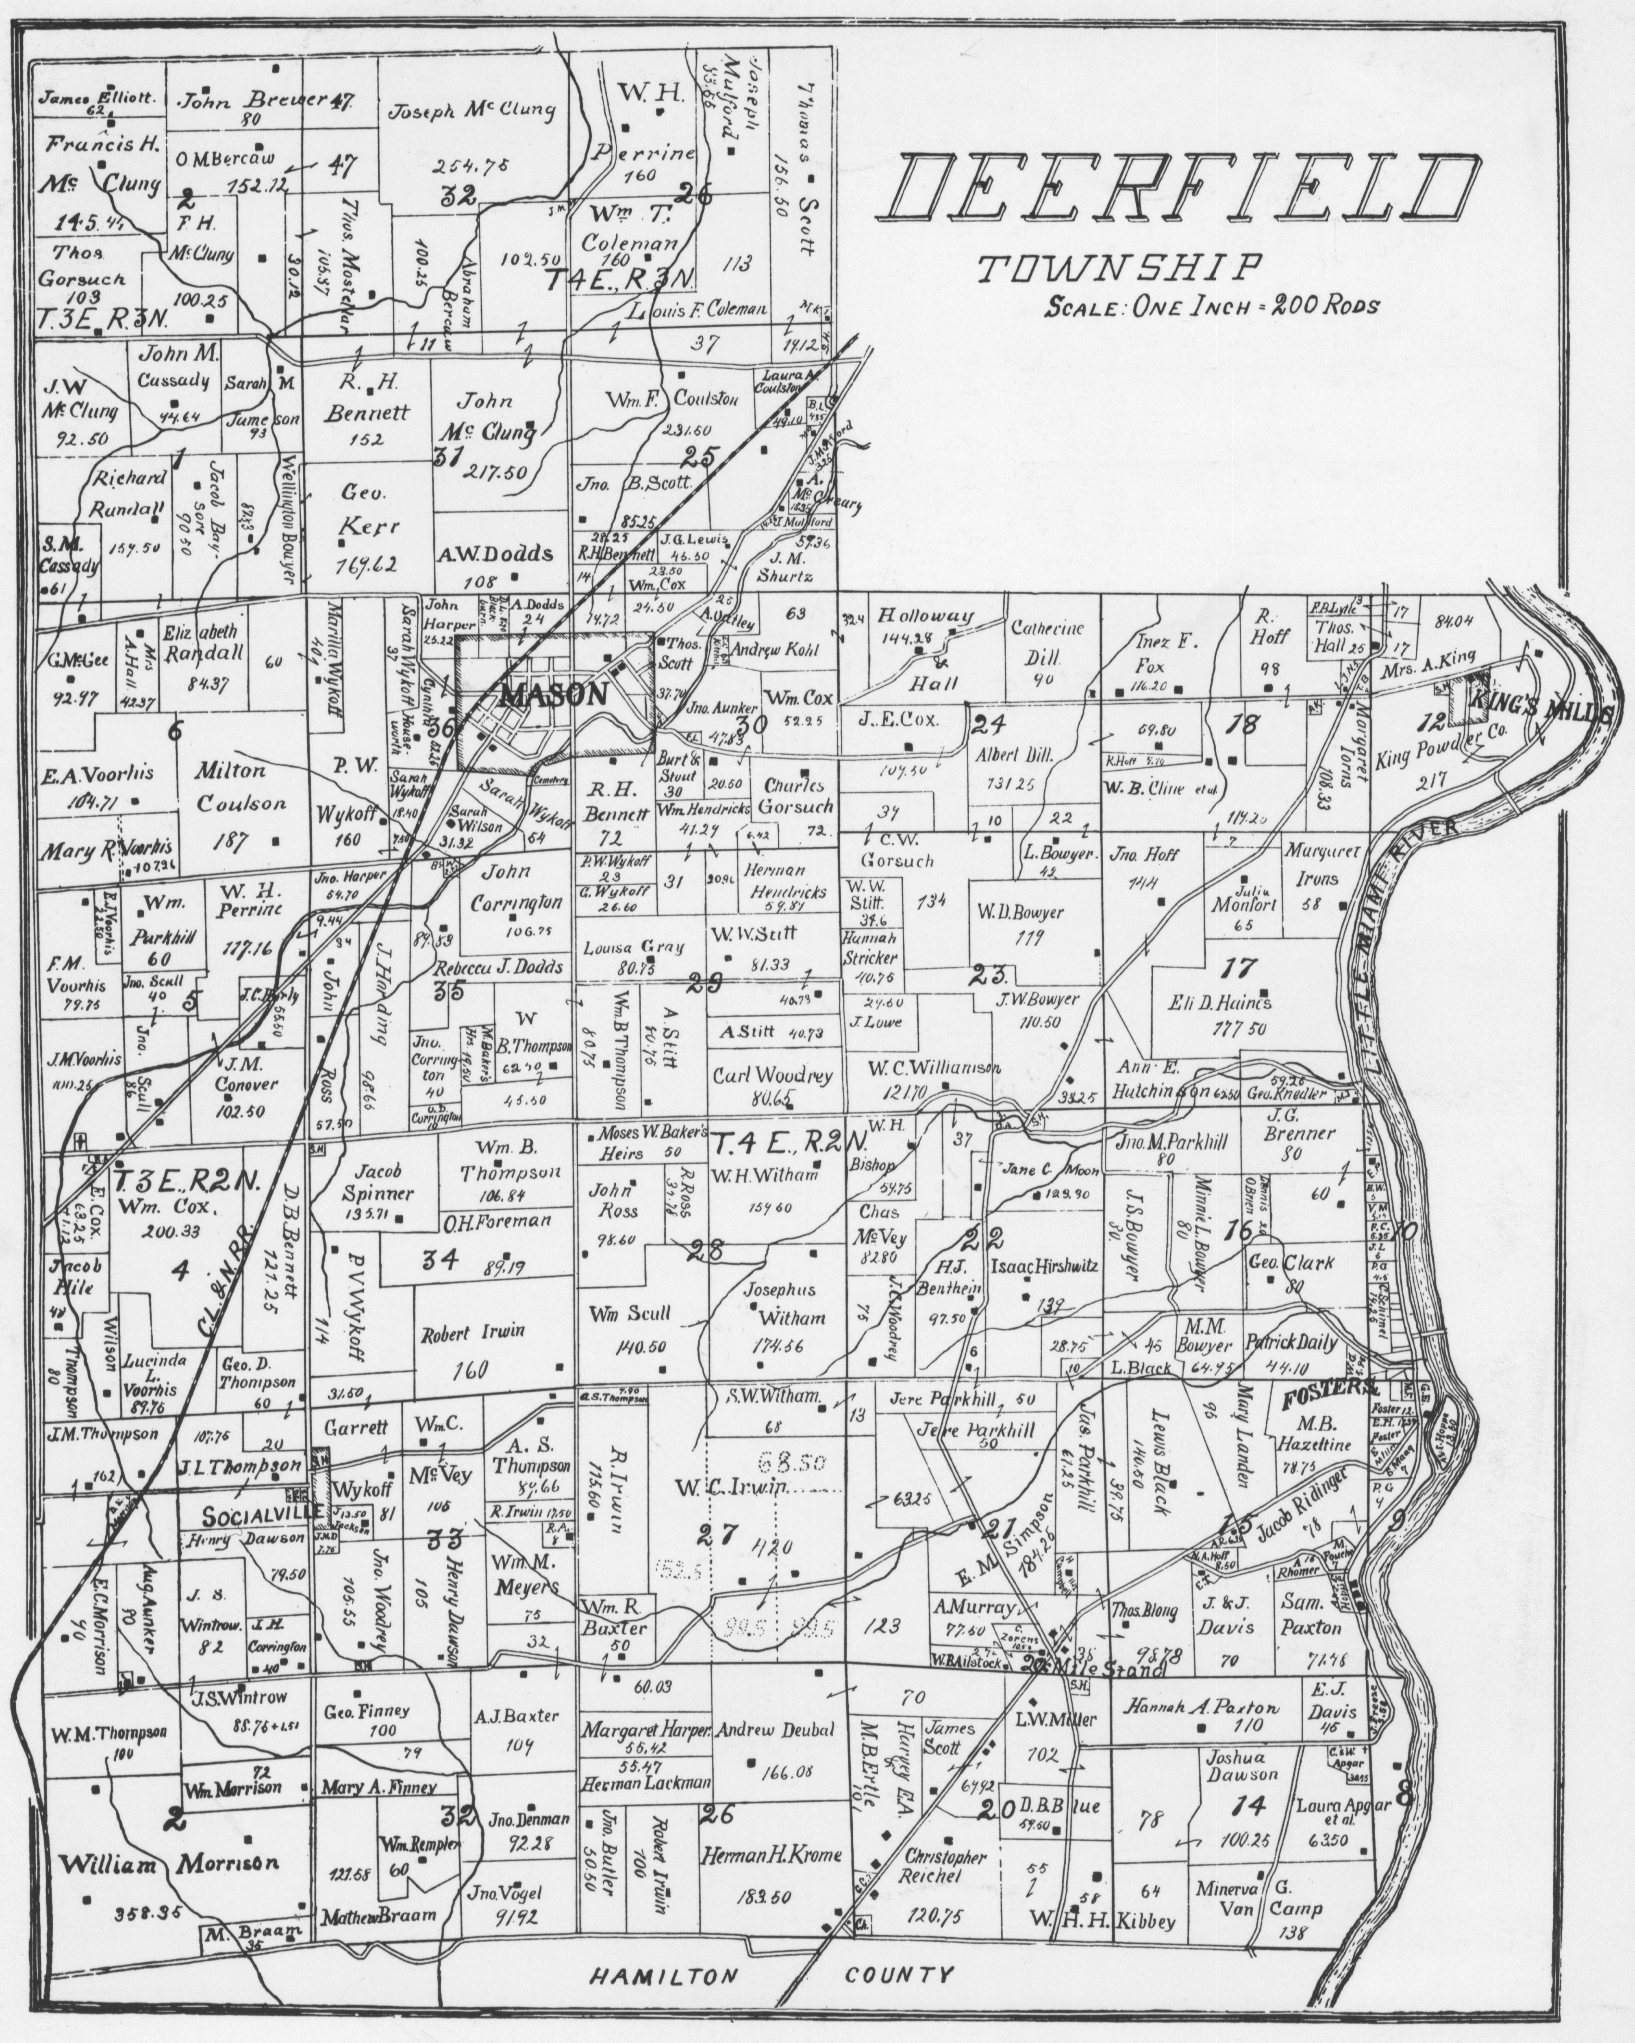 Deerfield Township map